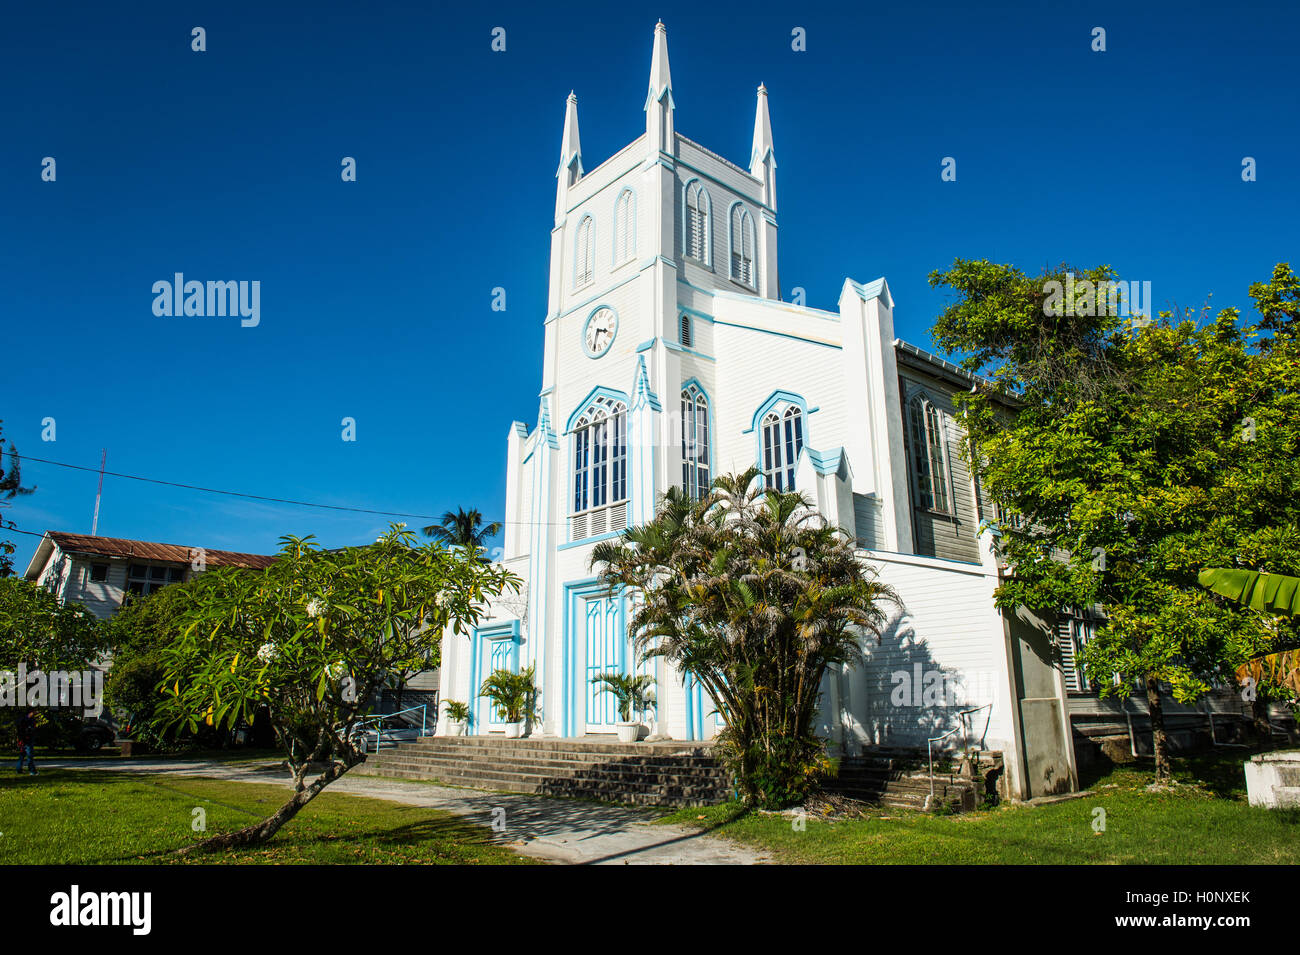 Christ Church, Georgetown, Guyana - Stock Image